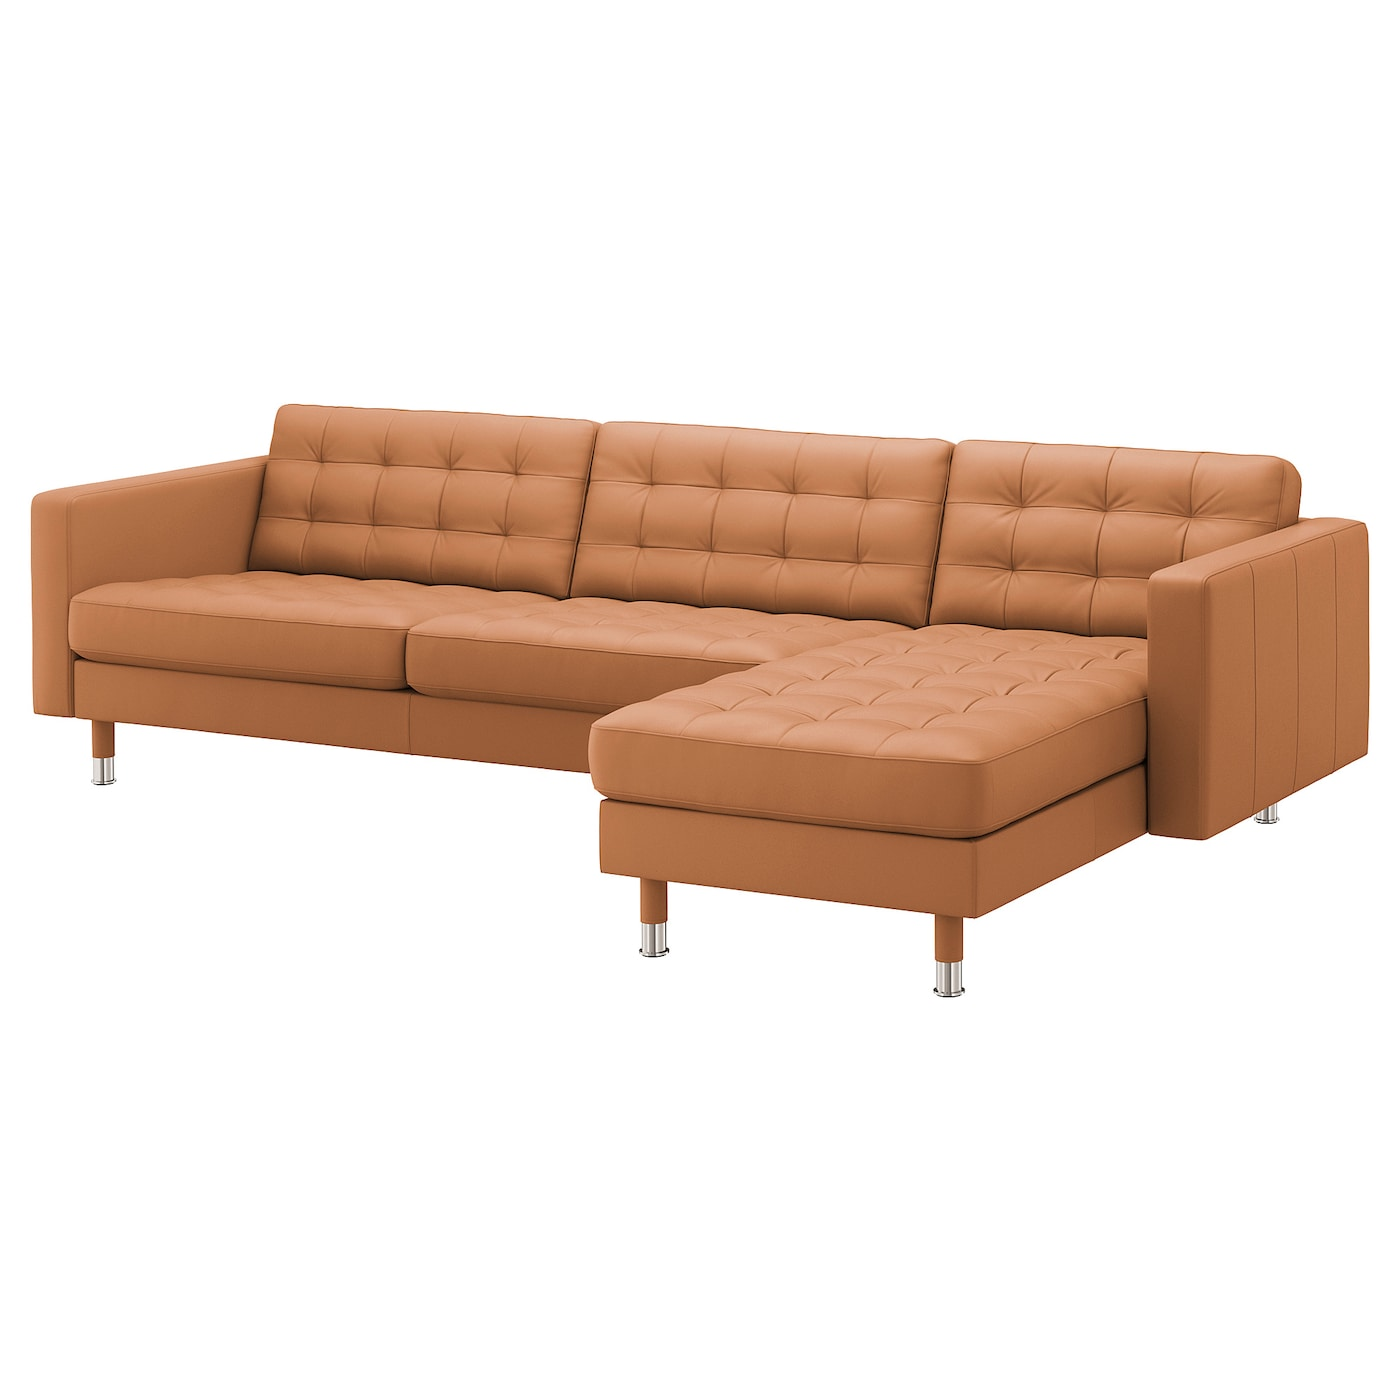 Landskrona Sectional 4 Seat With Chaise Grann Bomstad